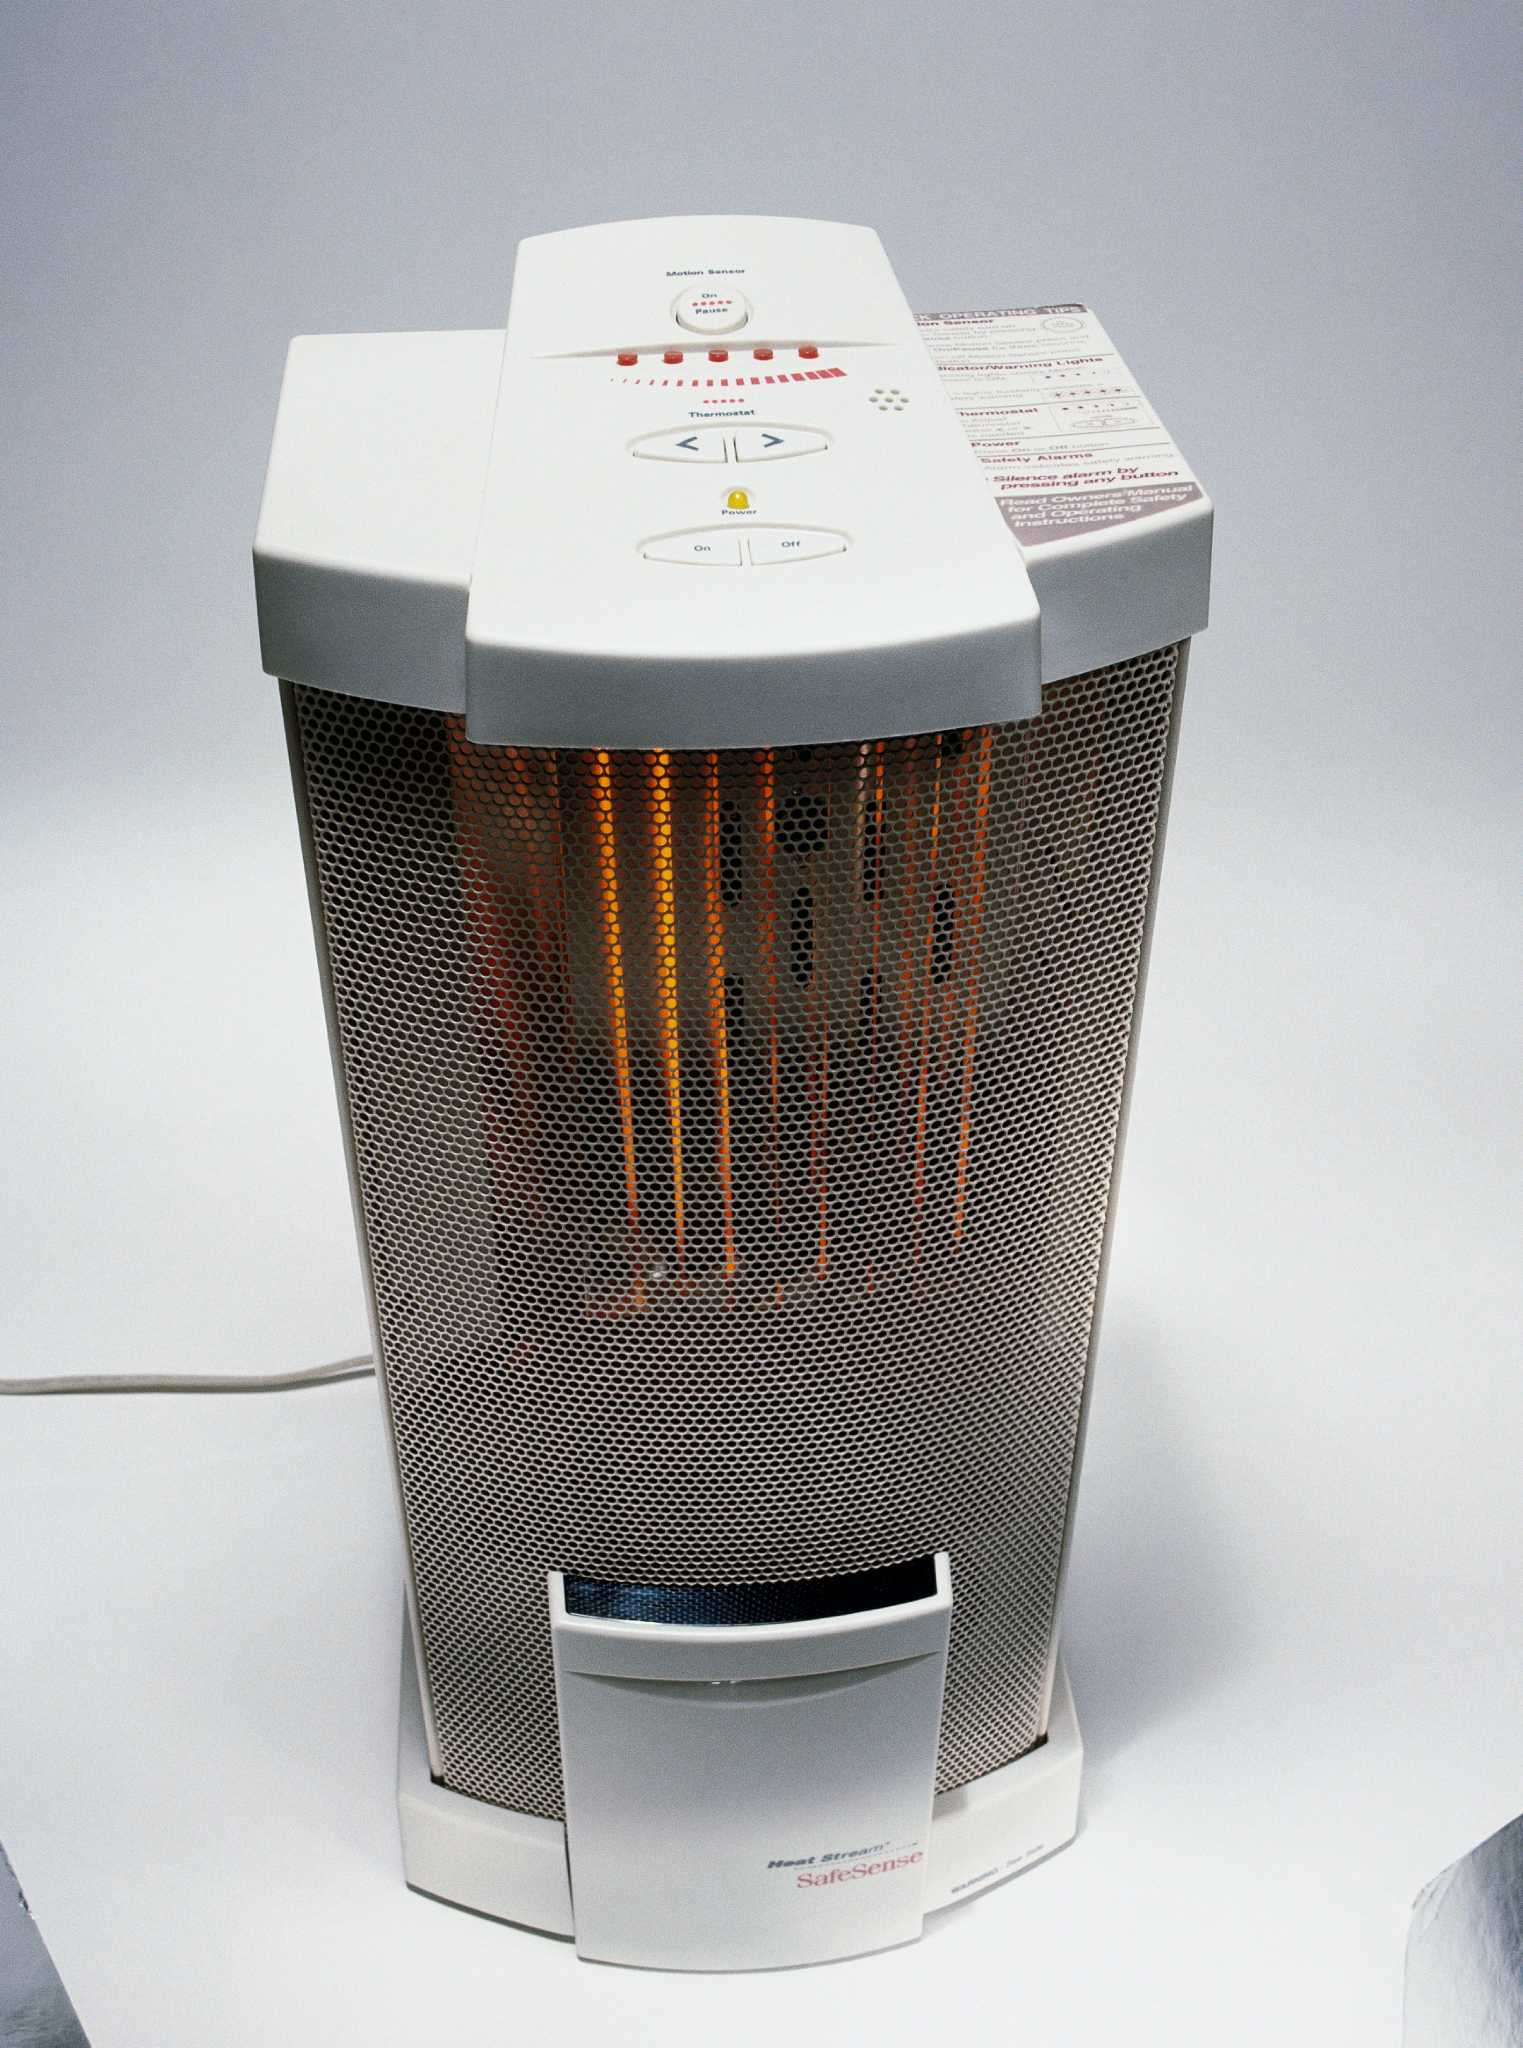 Living Smart Pros Cons And Cost Of Space Heater Options: space heating options